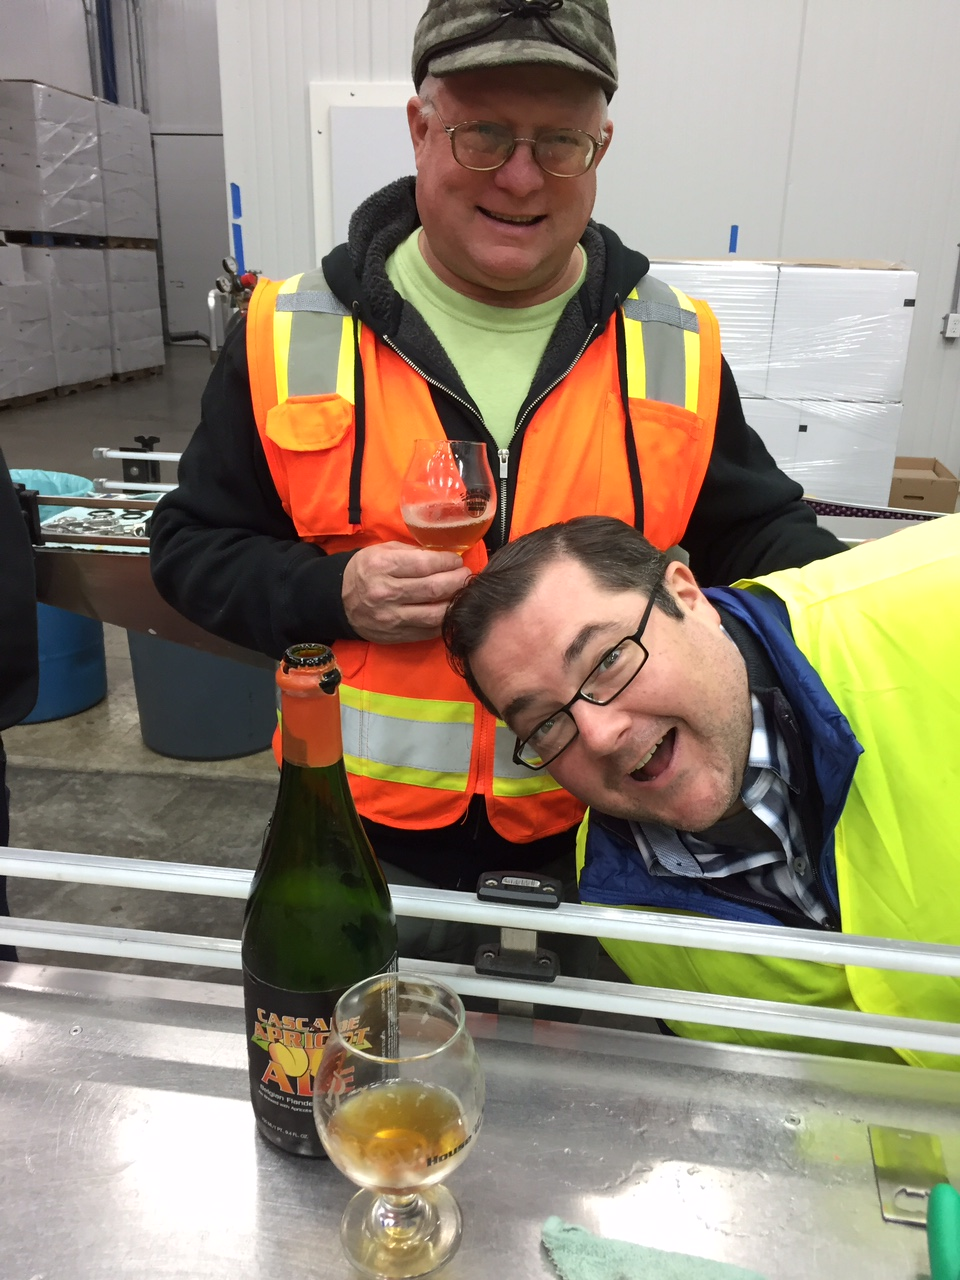 A perfect evocation of what it was like to tour the brewery with Ron, as John Holl and I did back in 2016.